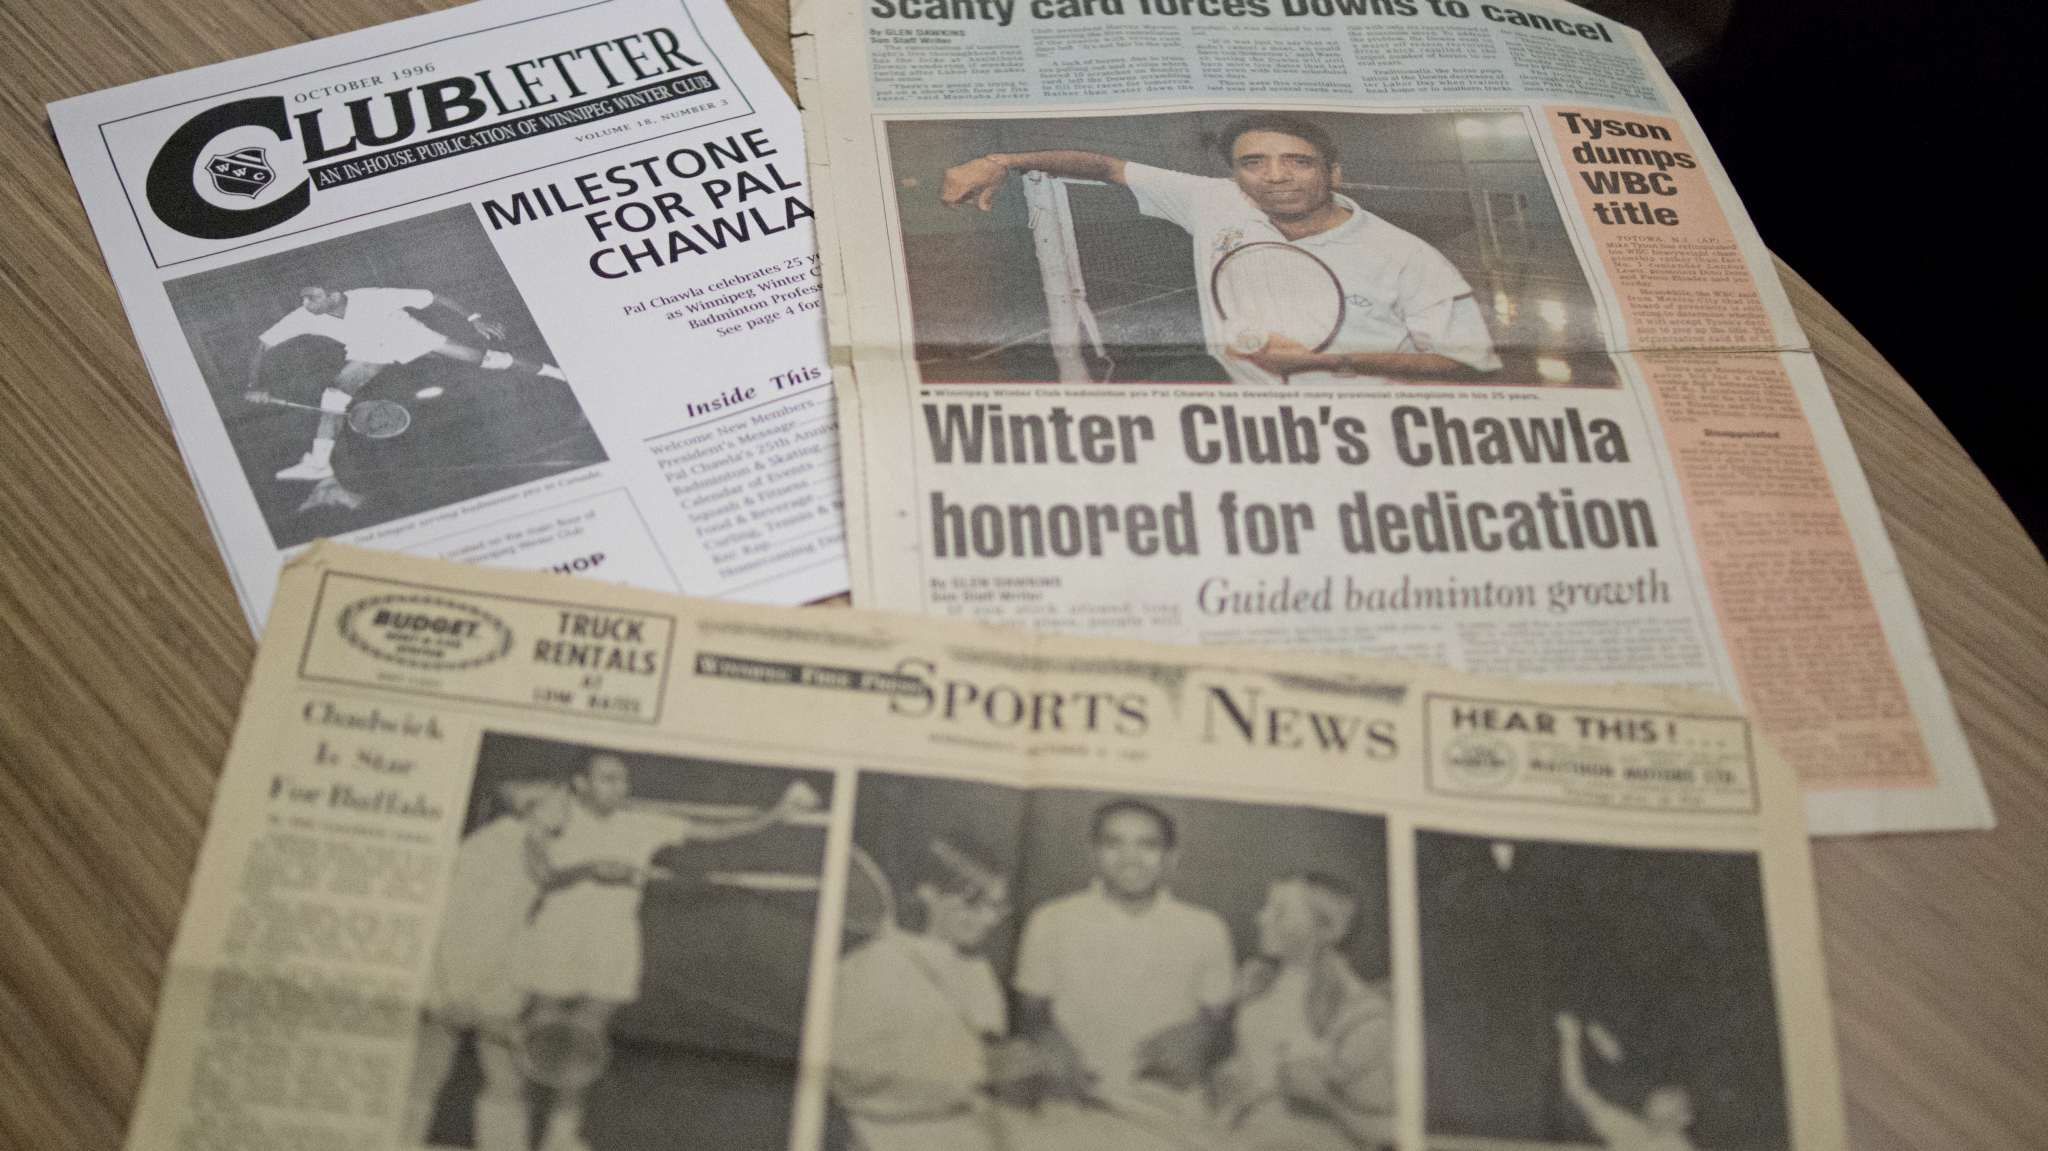 Pal Chawla has received many awards during his decades of coaching at the Winnipeg Winter Club.